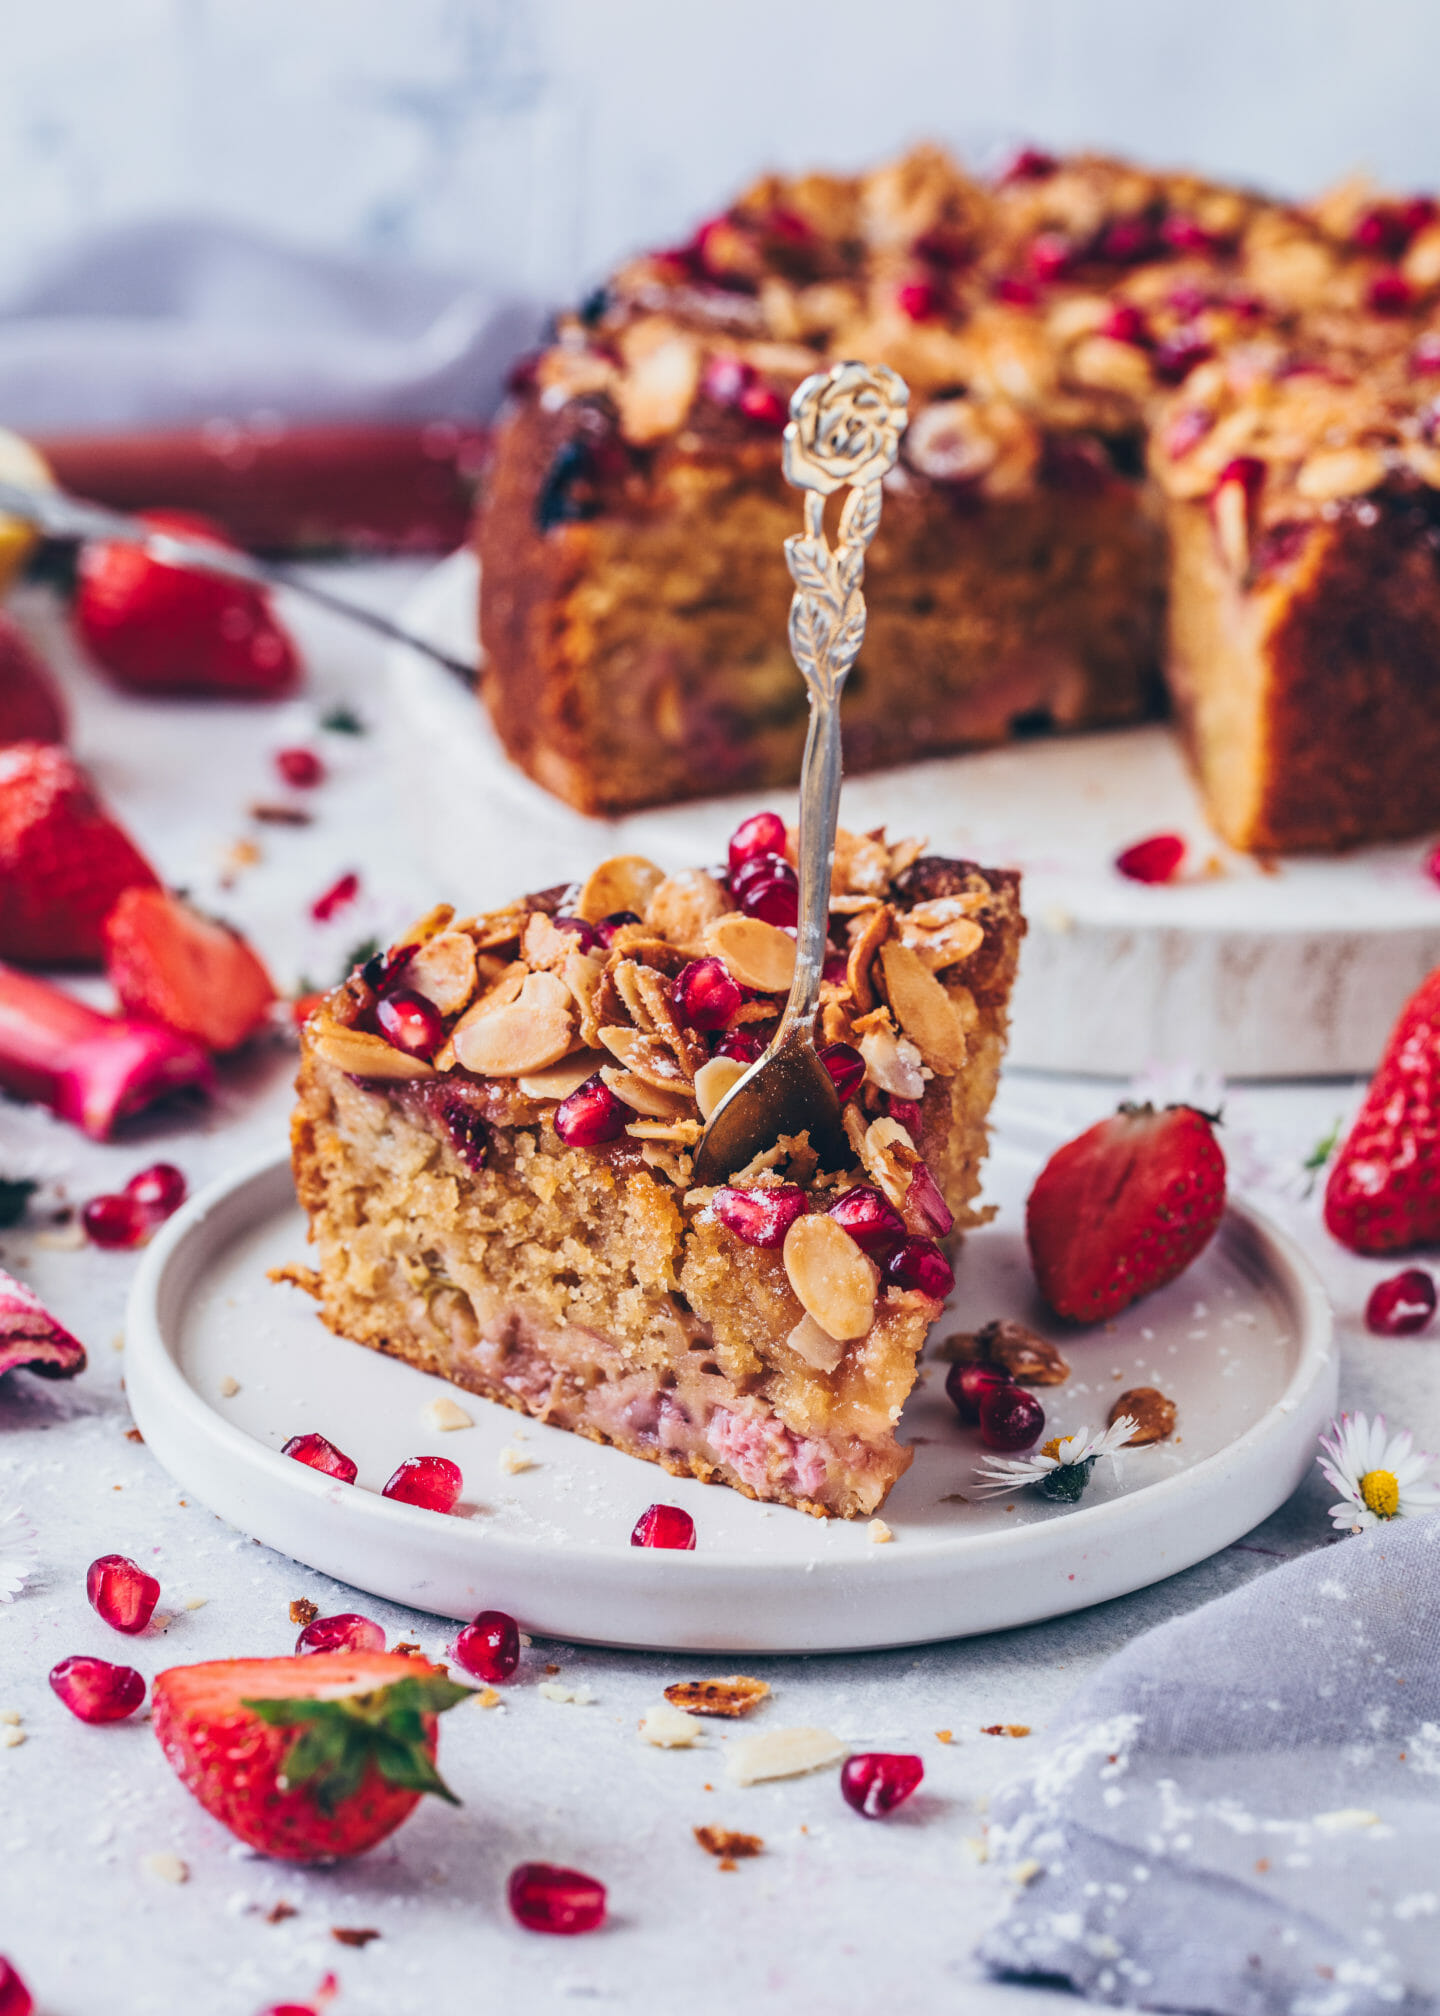 Strawberry Rhubarb Cake With Almonds Vegan Bianca Zapatka Rezepte